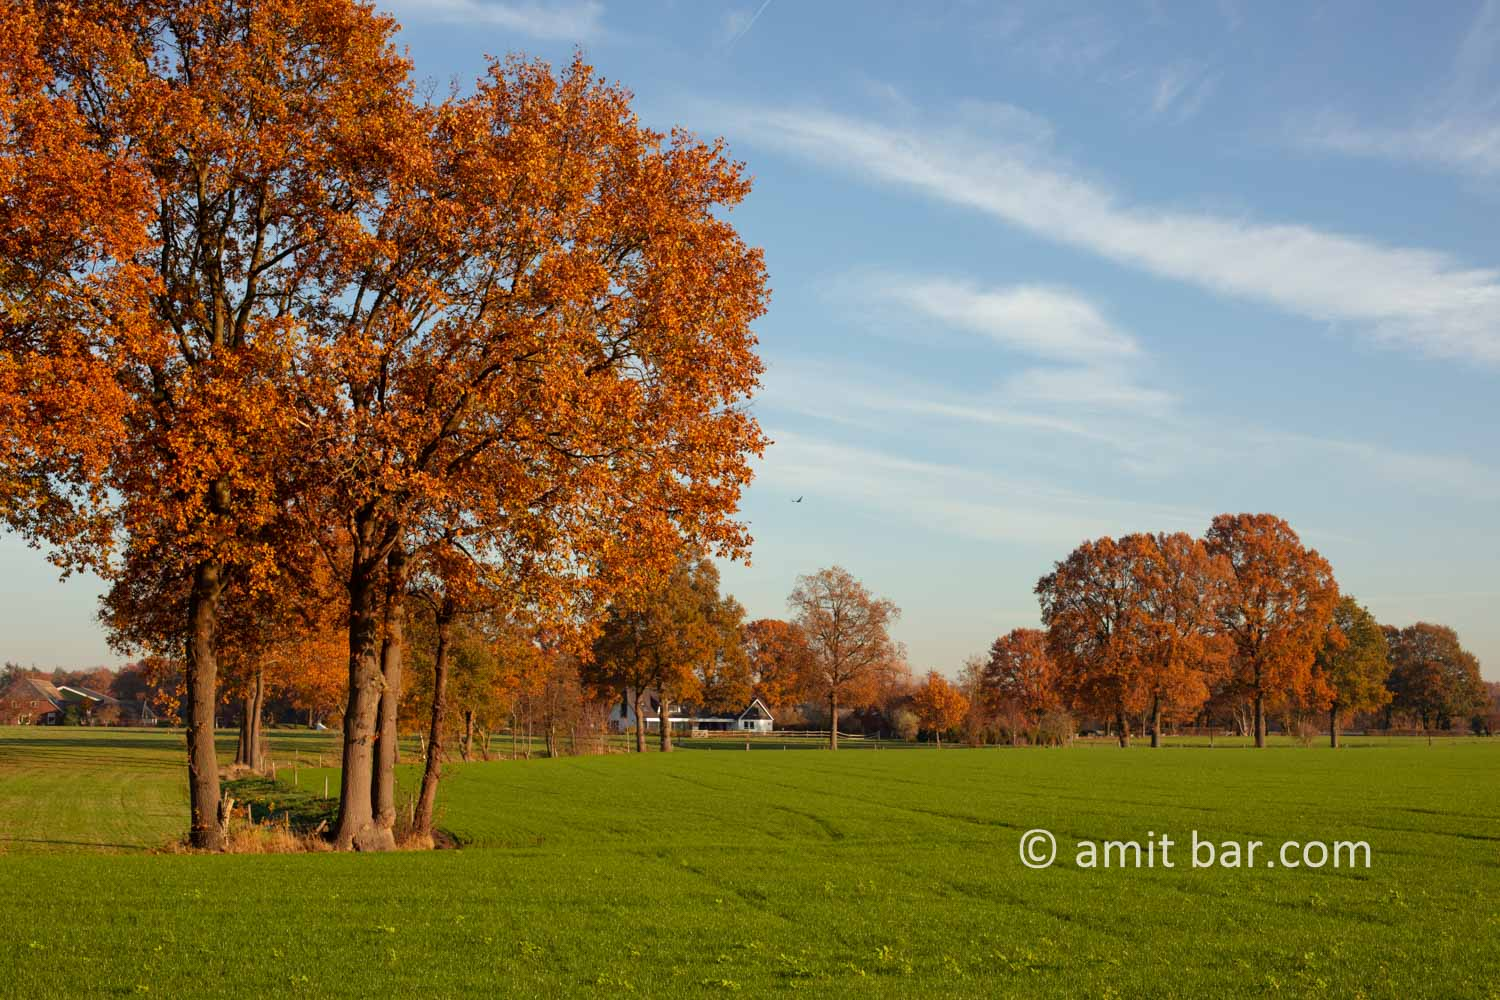 Autumn colors I: Autumn colors in the Achterhoek region, The Netherlands